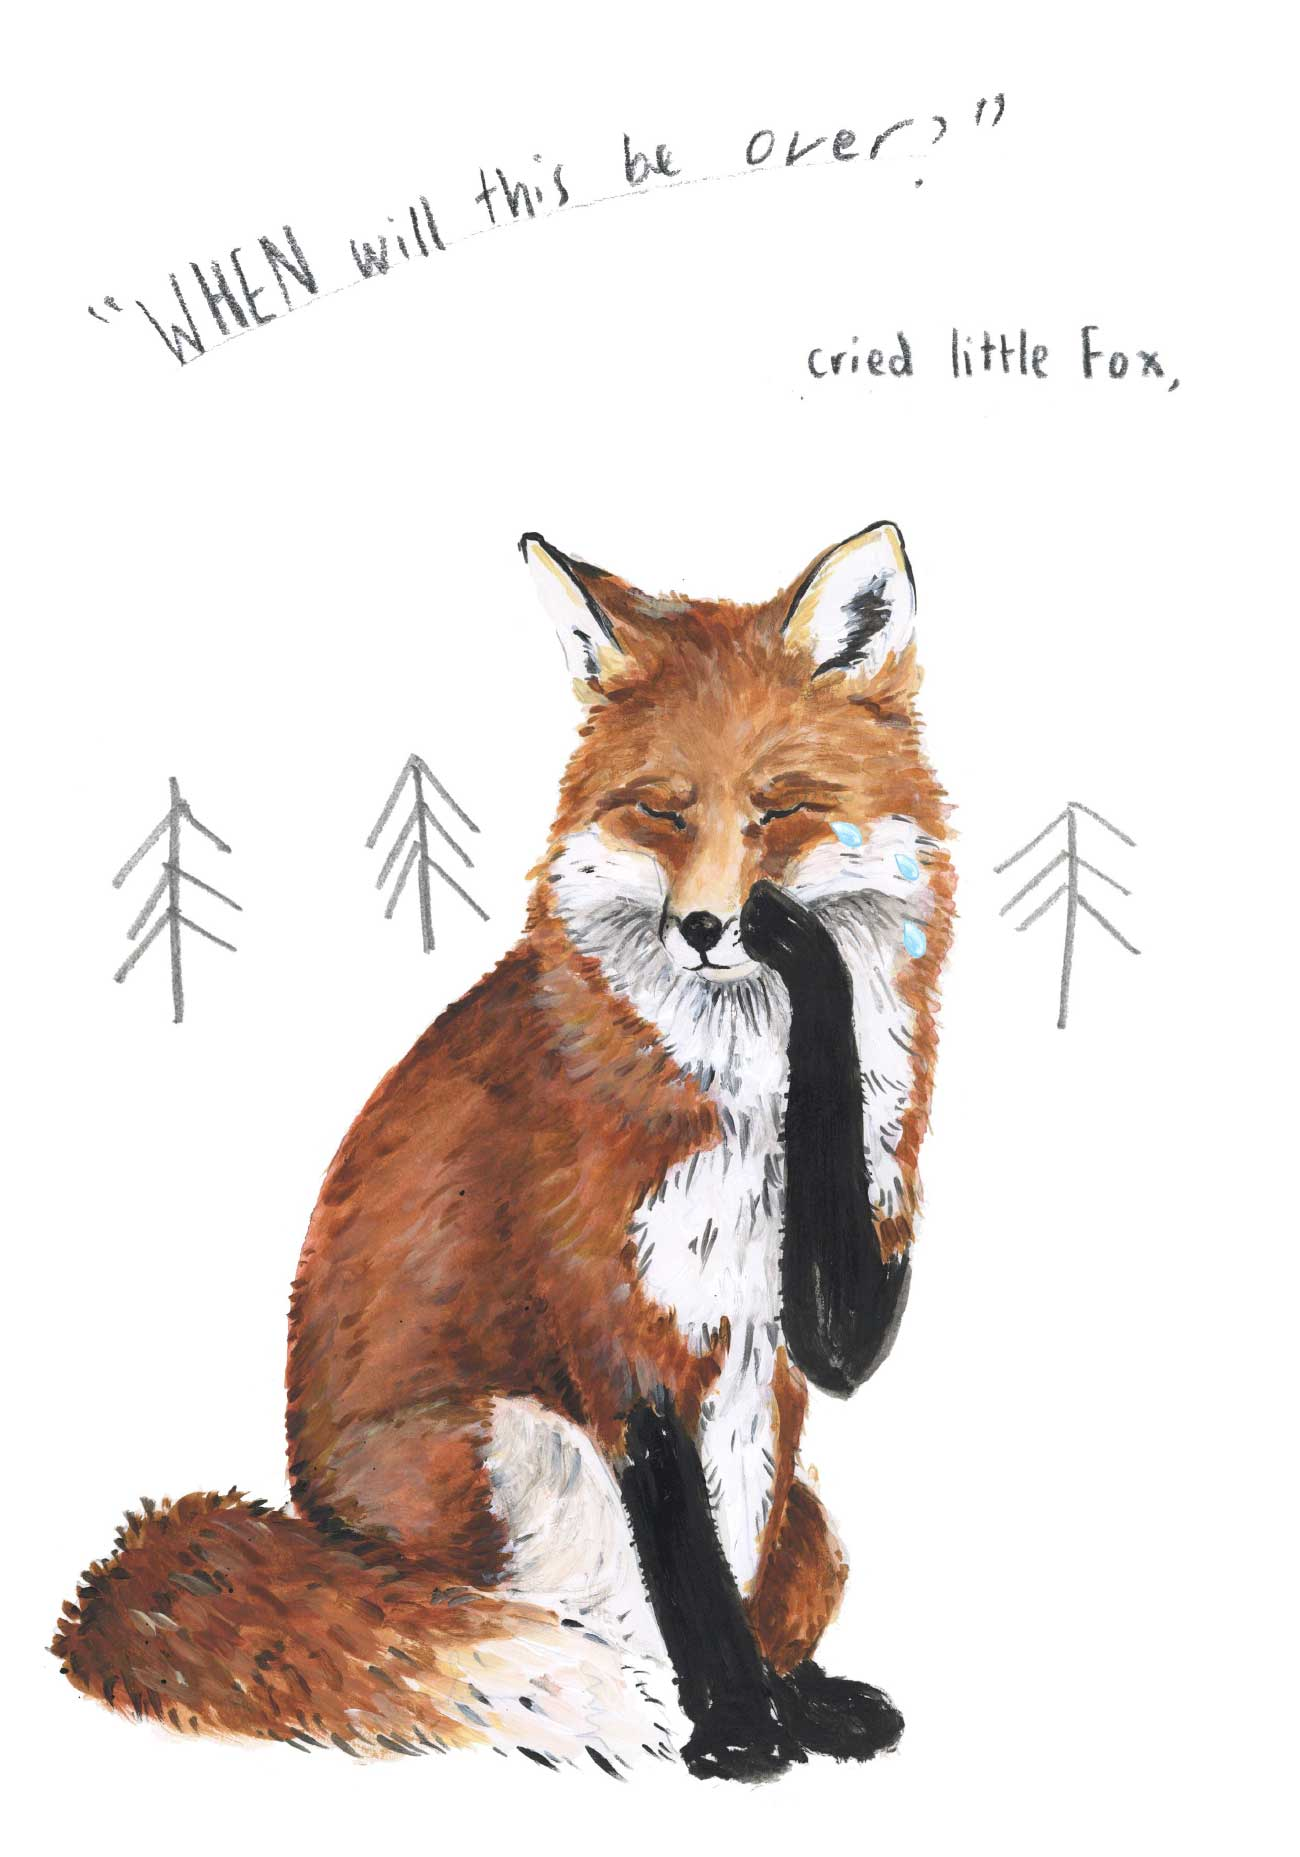 Kids bedtime story picture book Fox and the Pine page 8